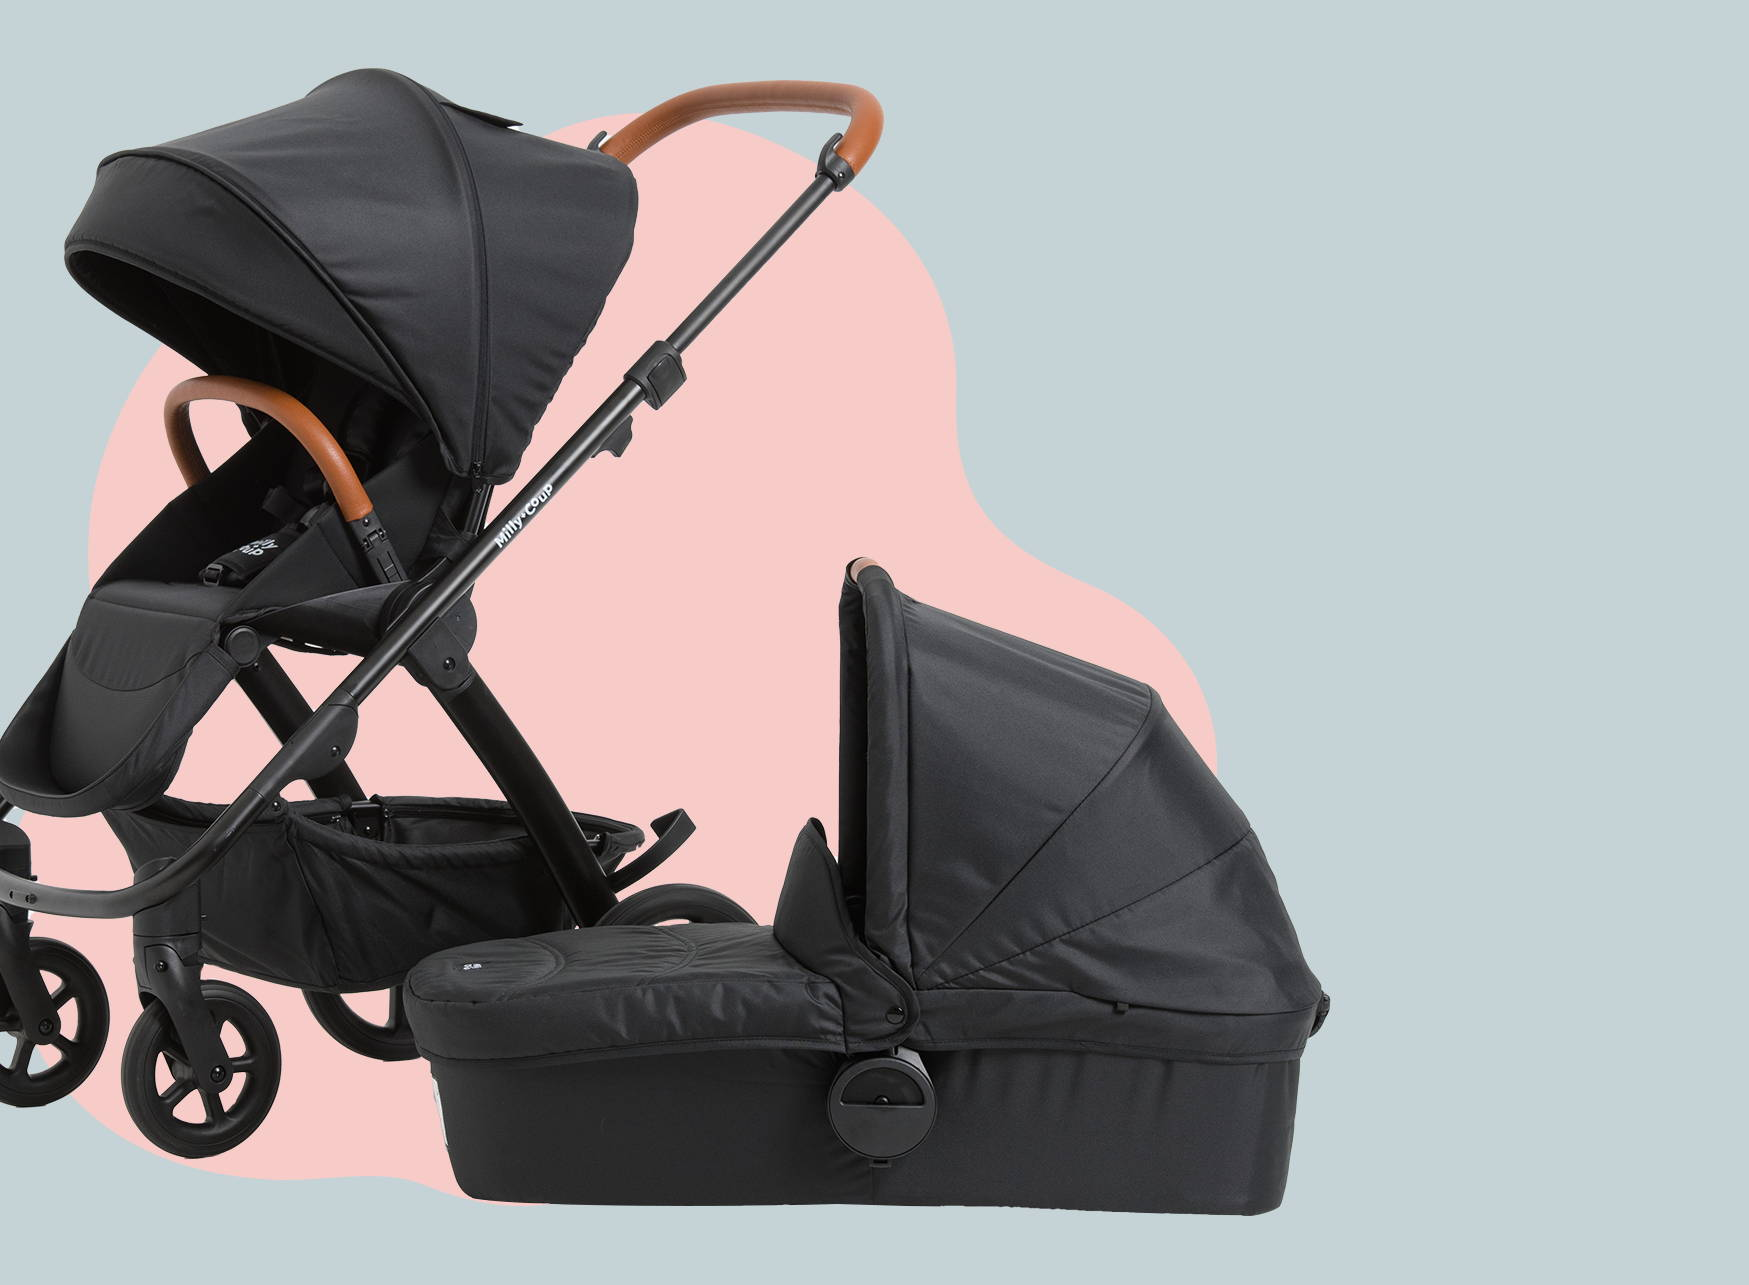 The stroller designed to make your life easy!